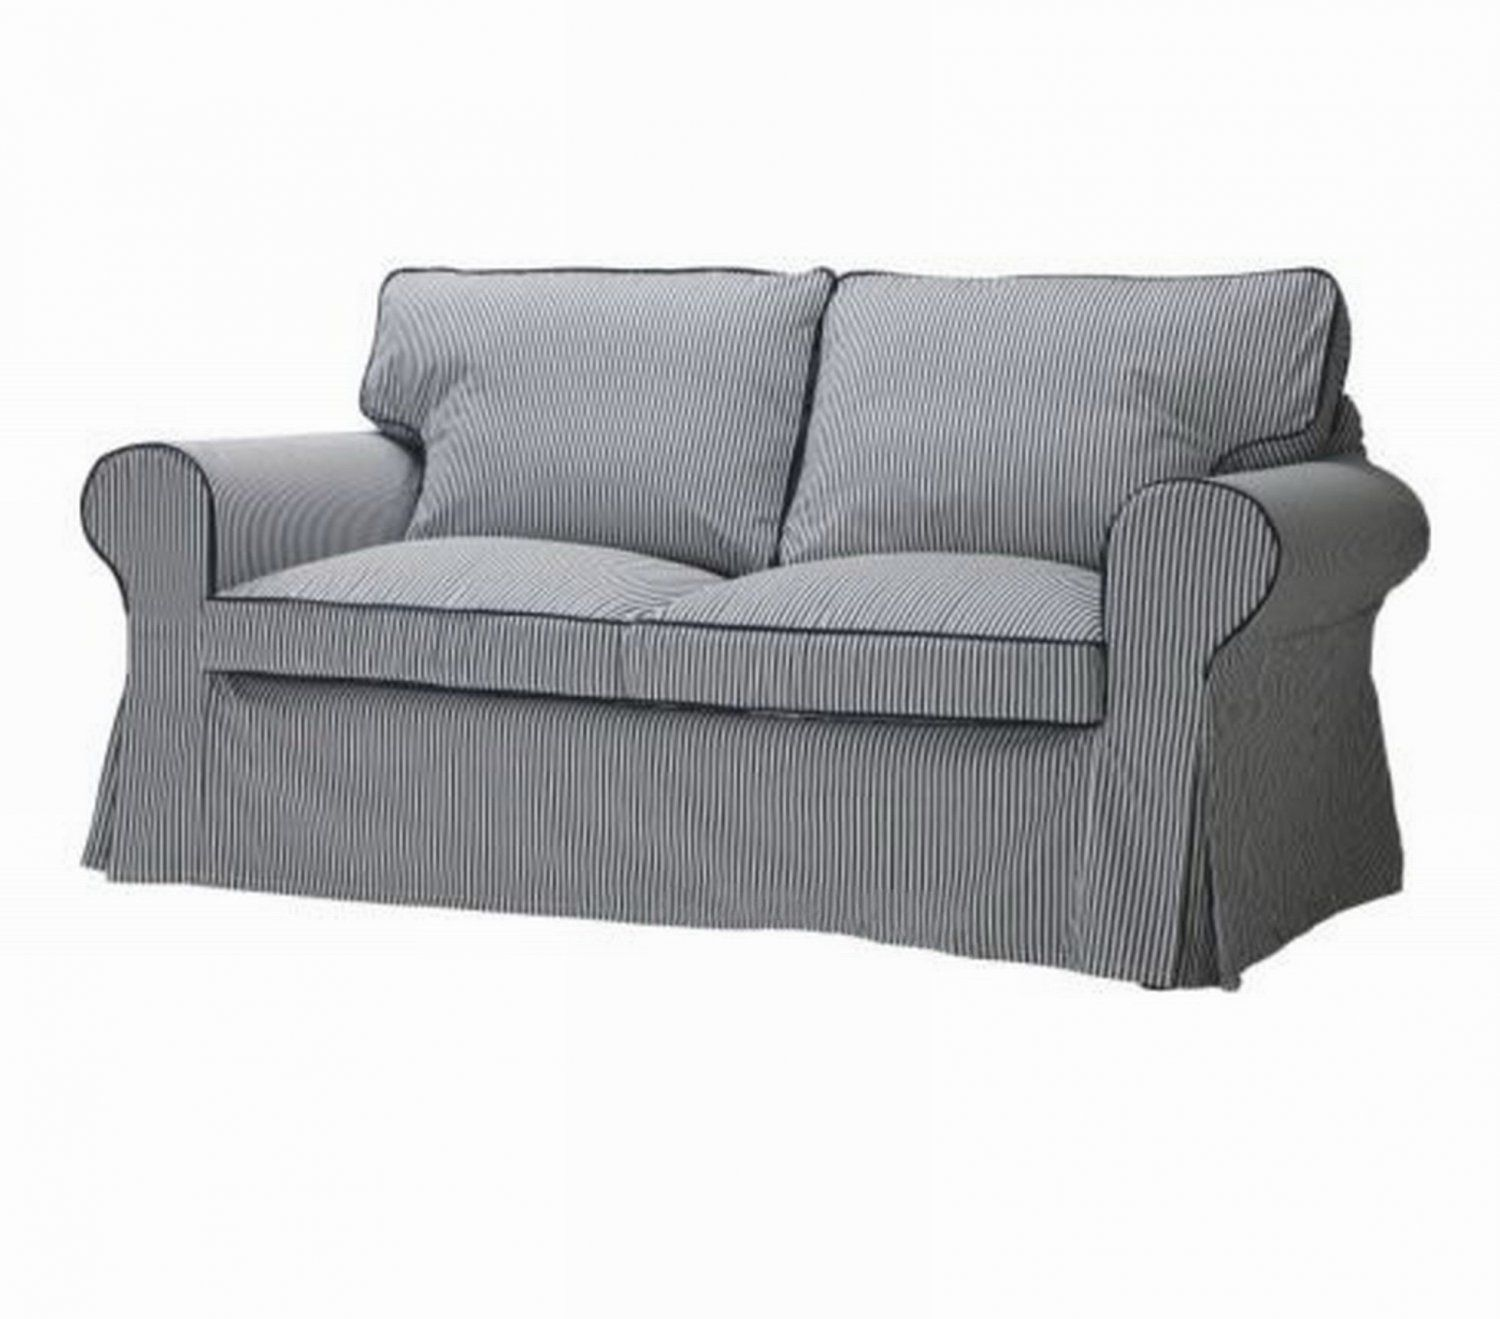 Ikea Ektorp 2 Seat Sofa Slipcover Loveseat Cover Simris Blue White Stripe Striped Couch Blue Striped Couch Couch Covers